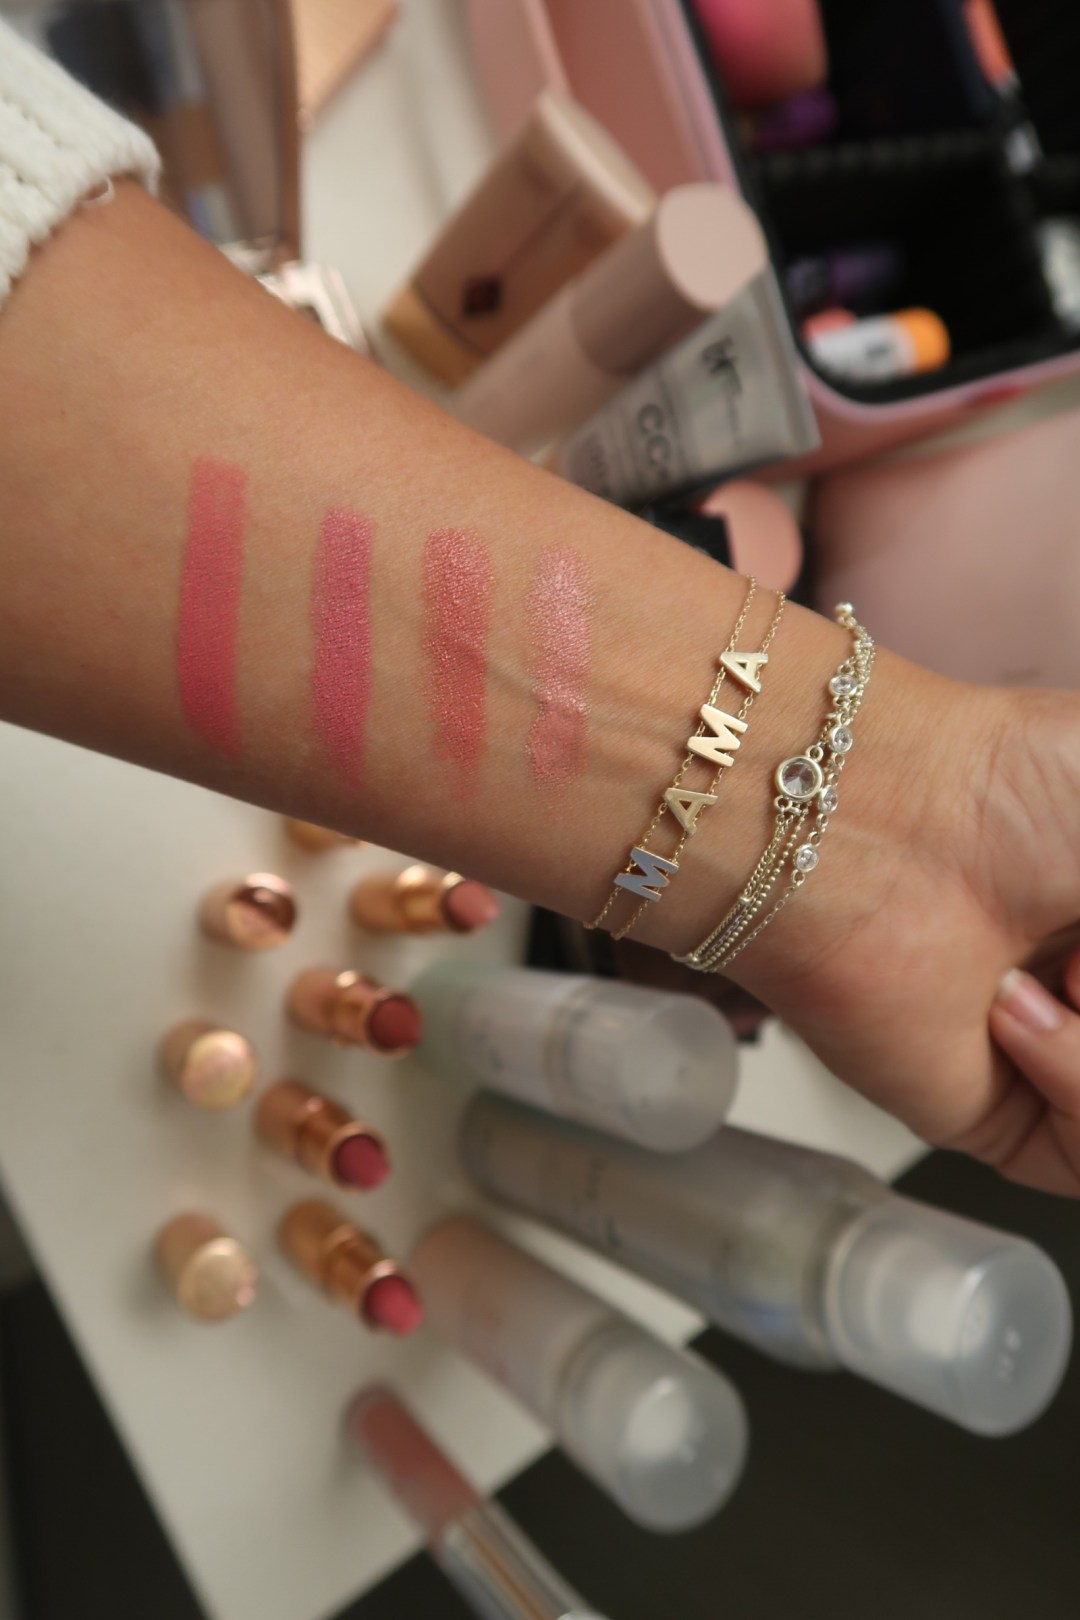 Sephora Favorites, Charlotte Tilbury, Best lipsticks